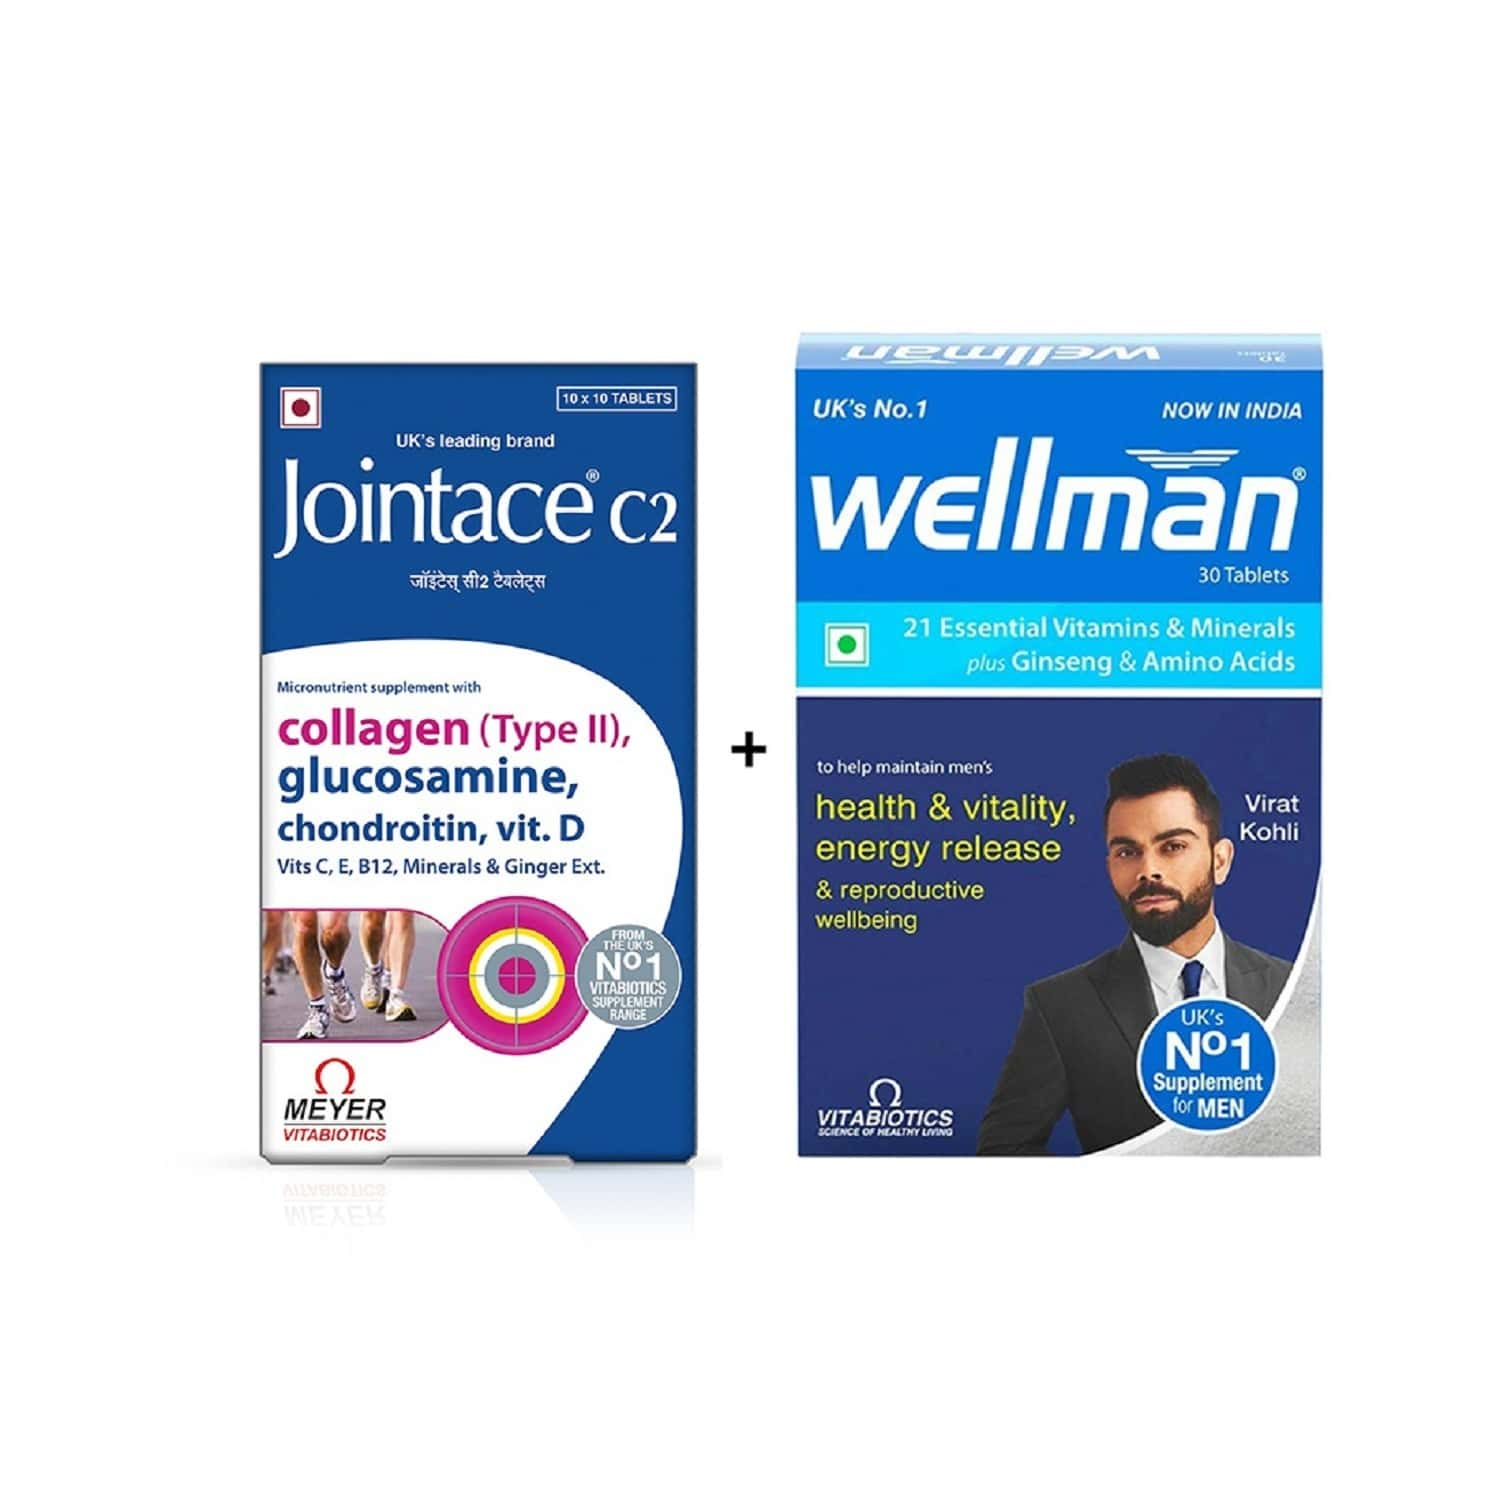 Jointace - Vitamin Supplement (includes Glucosamine, Chondroitin And Vitamin D) - 30 Tablets With Wellman 30 Tablet Free